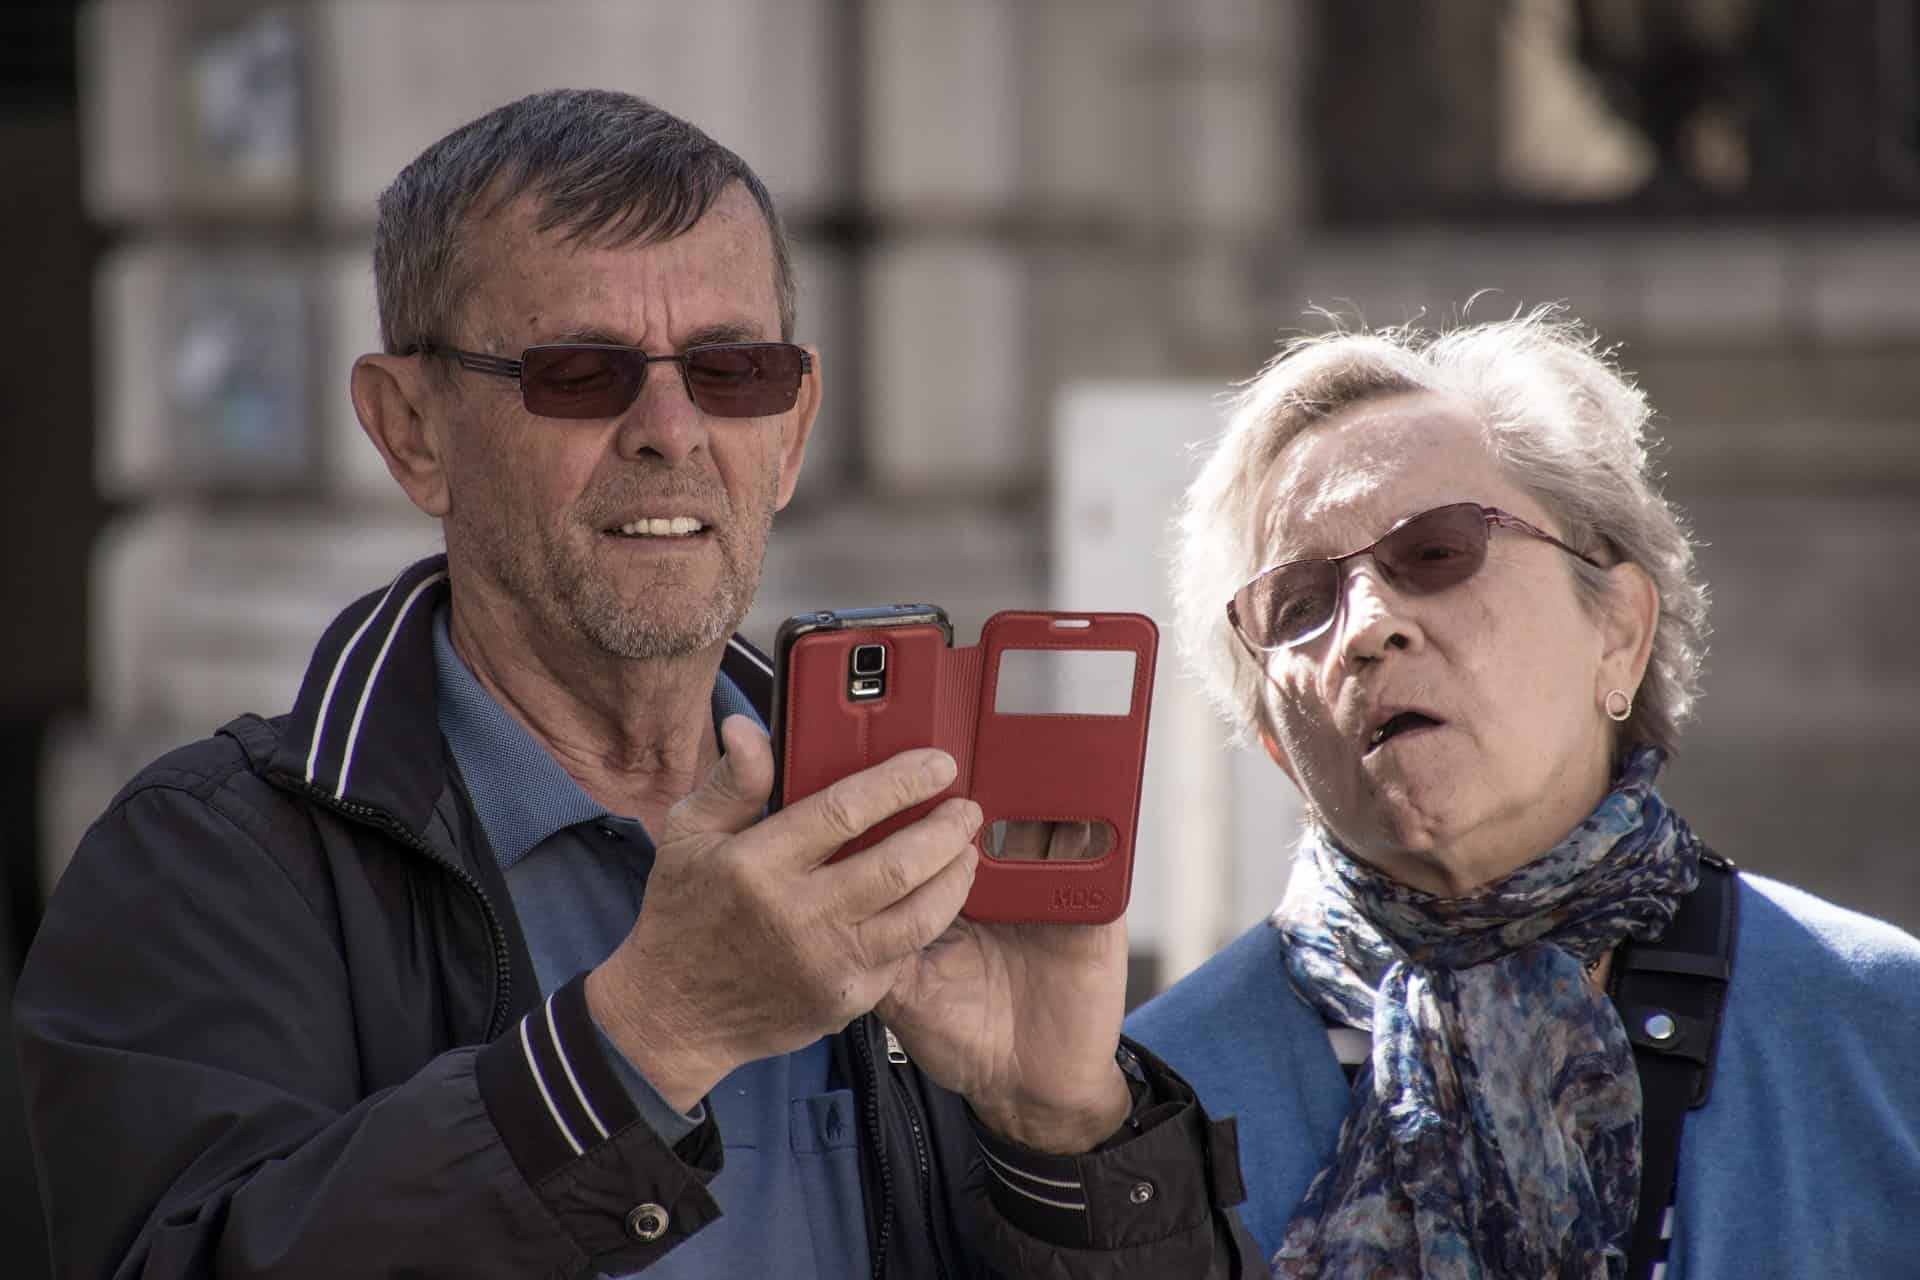 an old people is using his phone